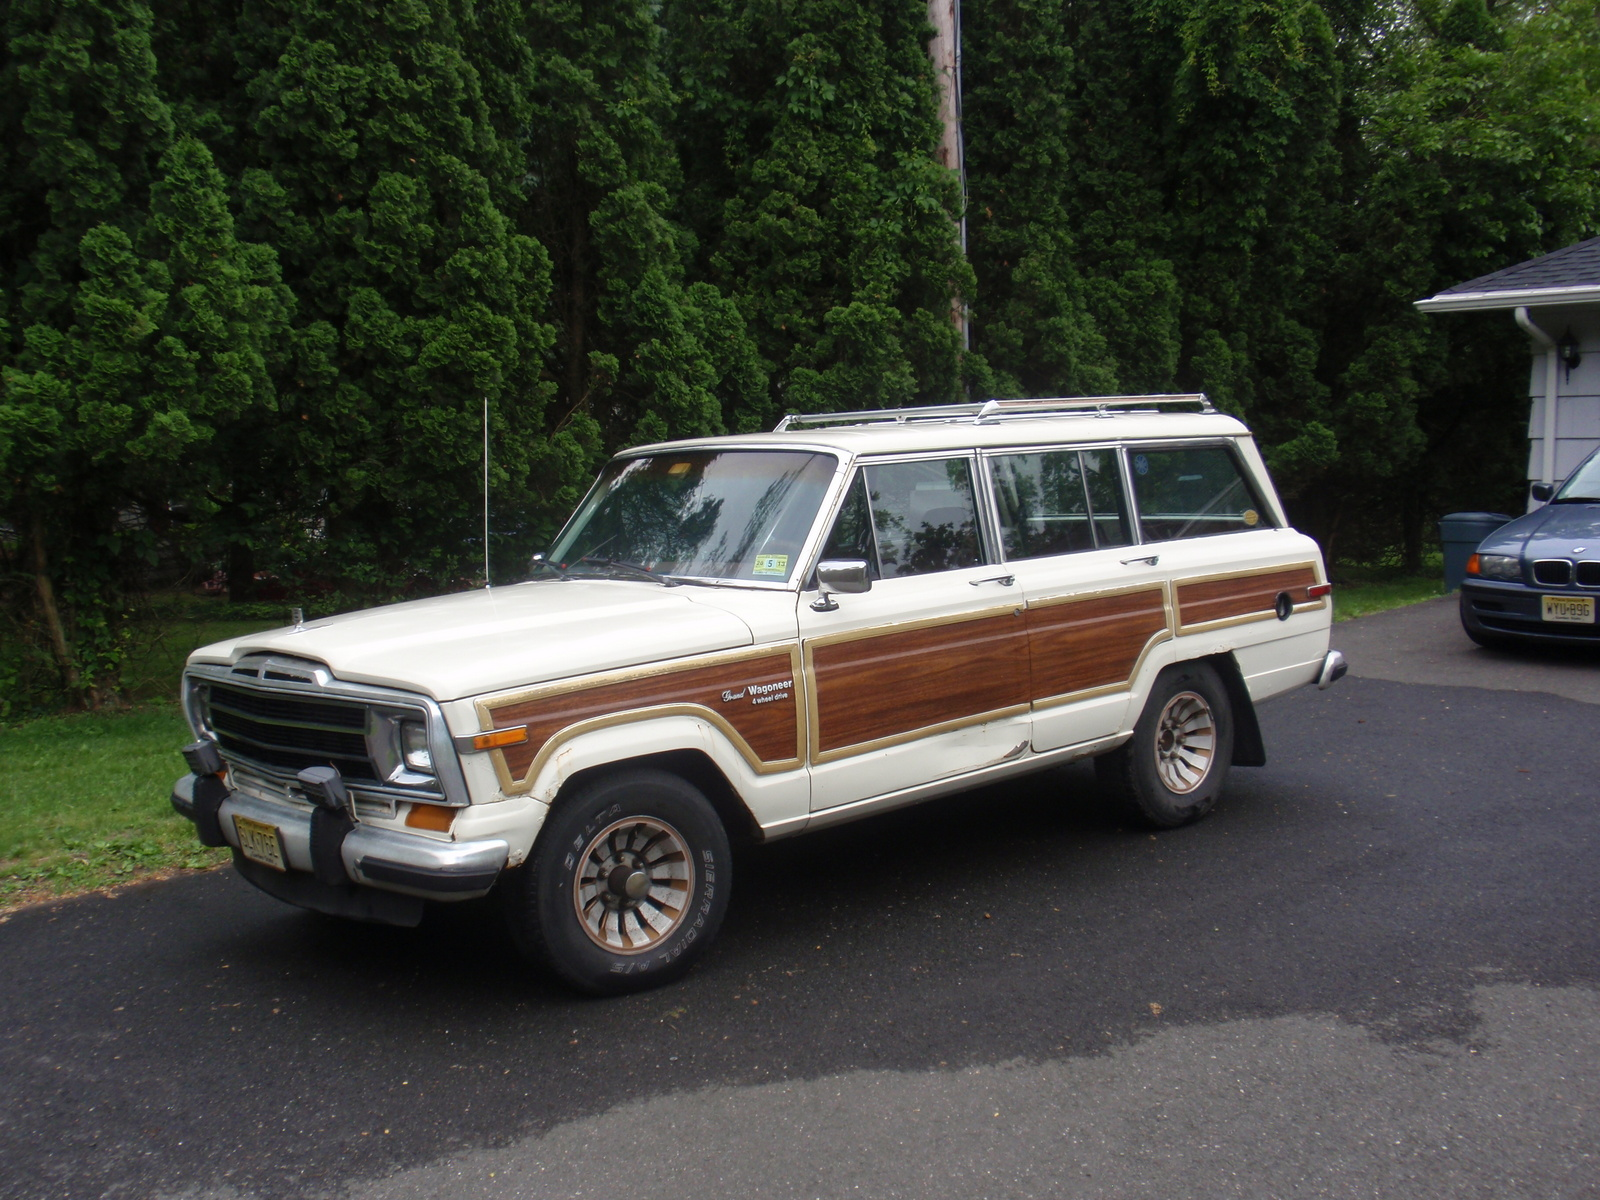 2014 jeep wagoneer price pictures to pin on pinterest. Cars Review. Best American Auto & Cars Review